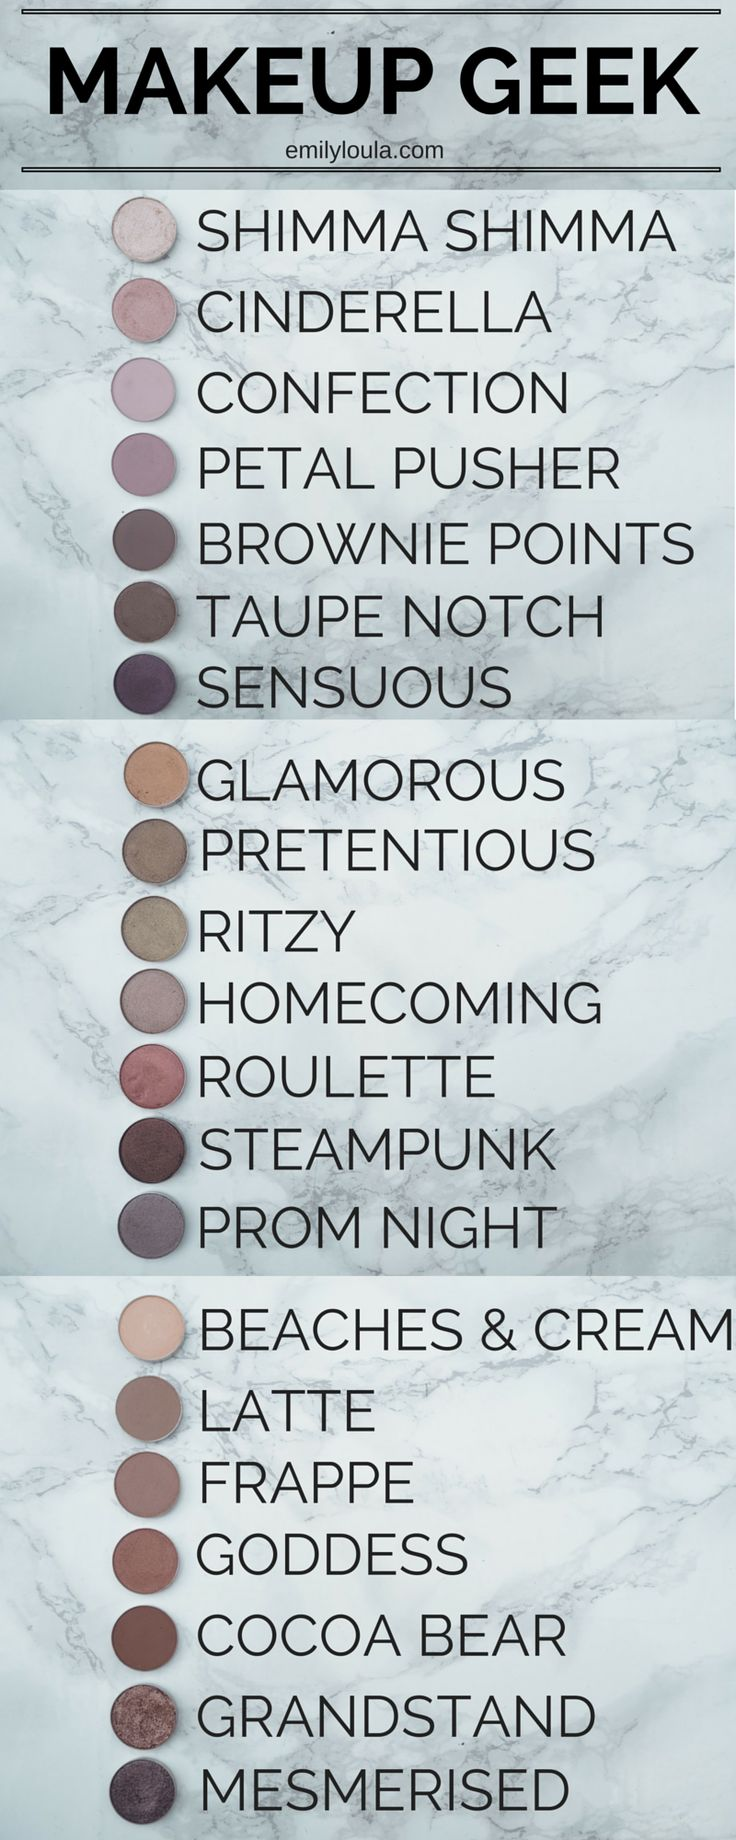 Makeup Geek Eyeshadow Individual pan collection ft. shimma shimma, cinderella, confection, petal pusher, brownie points, taupe